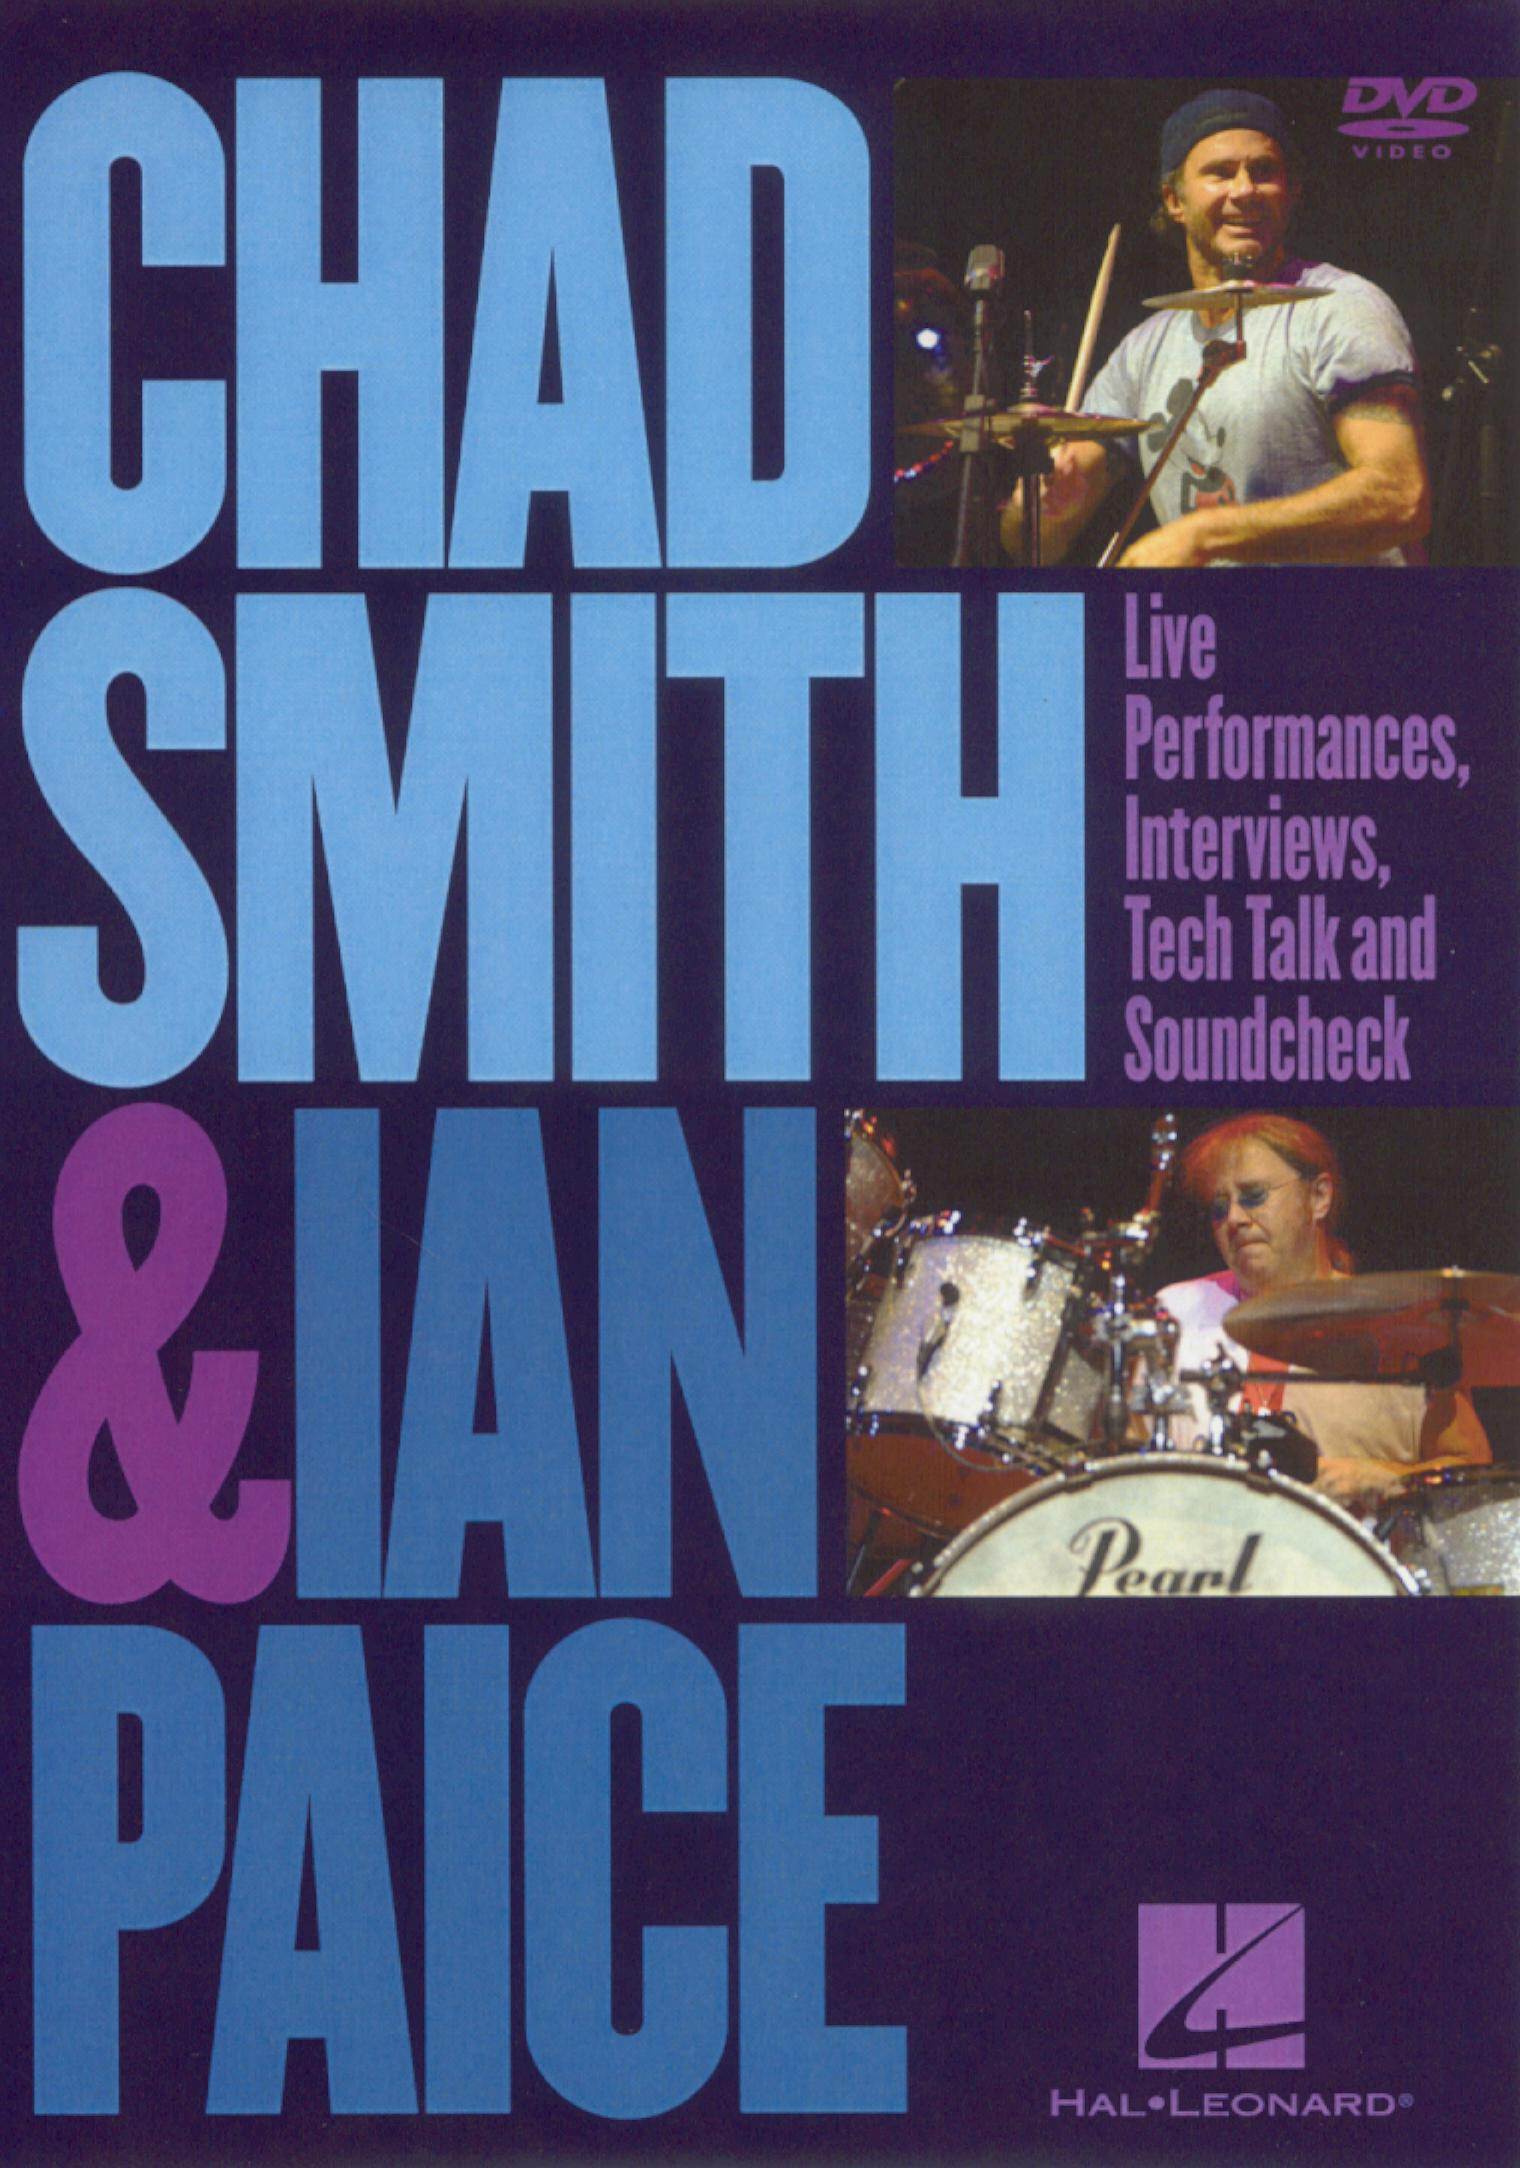 Chad Smith and Ian Paice: Live Performances, Interviews, Tech Talk,  and Sound